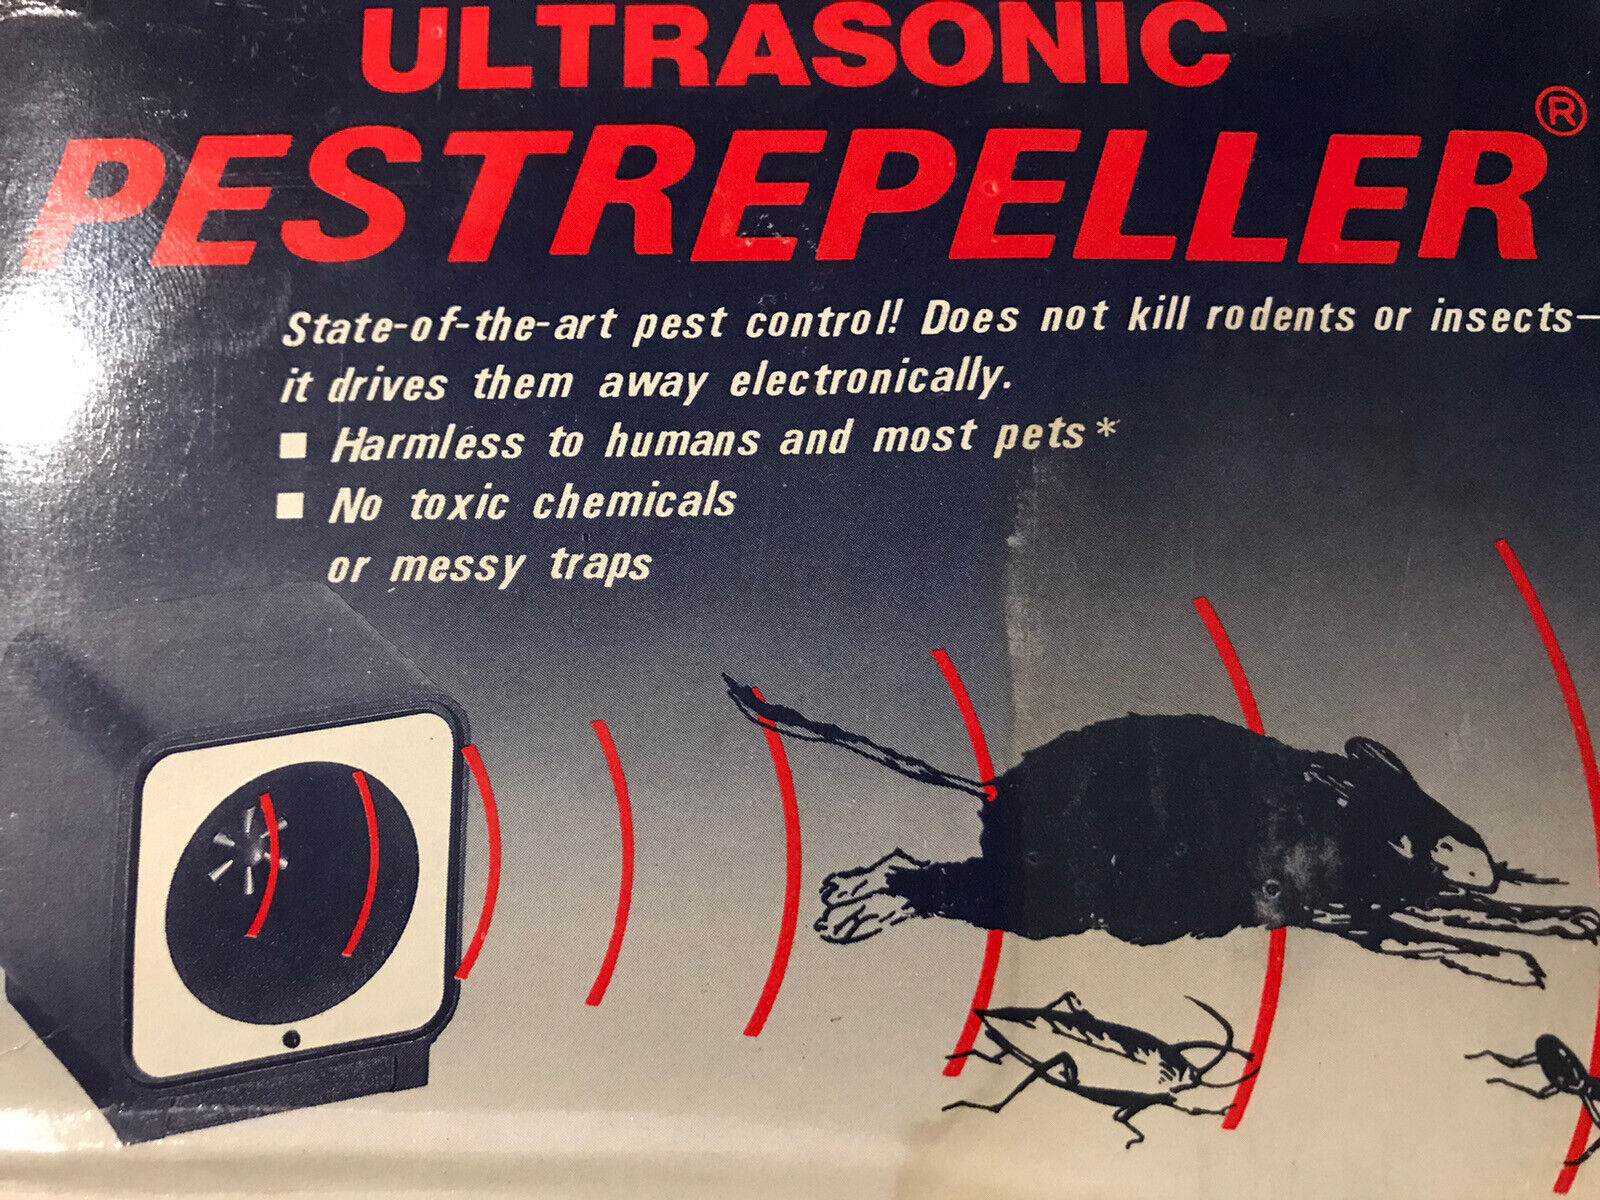 Ultrasonic Pest Repeller State of the art Pest Control